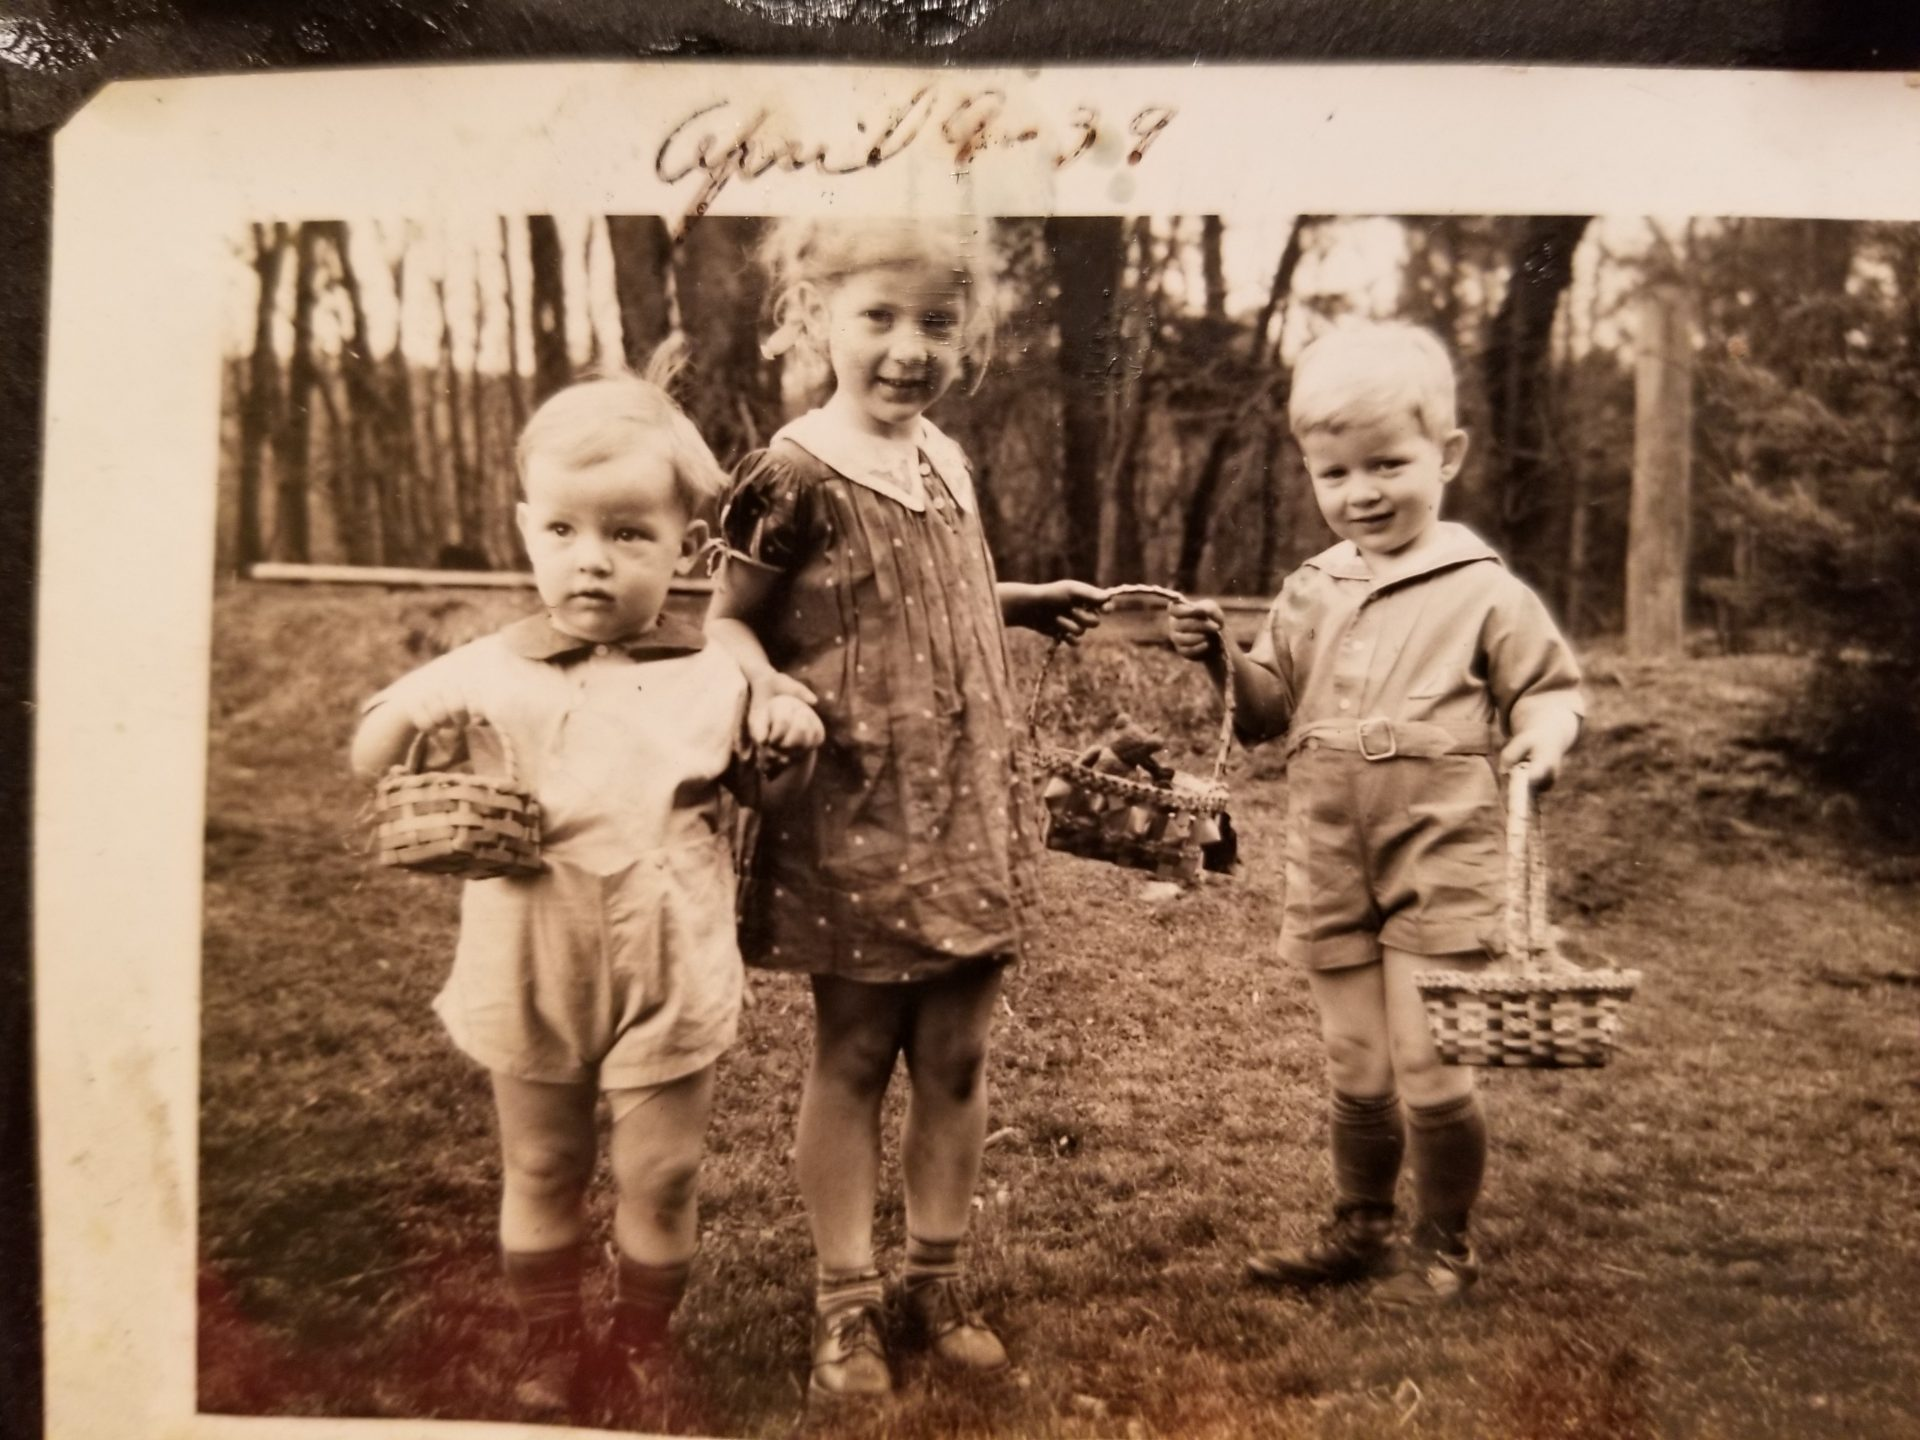 George Bentz at 2 years old with sister Betty and brother John